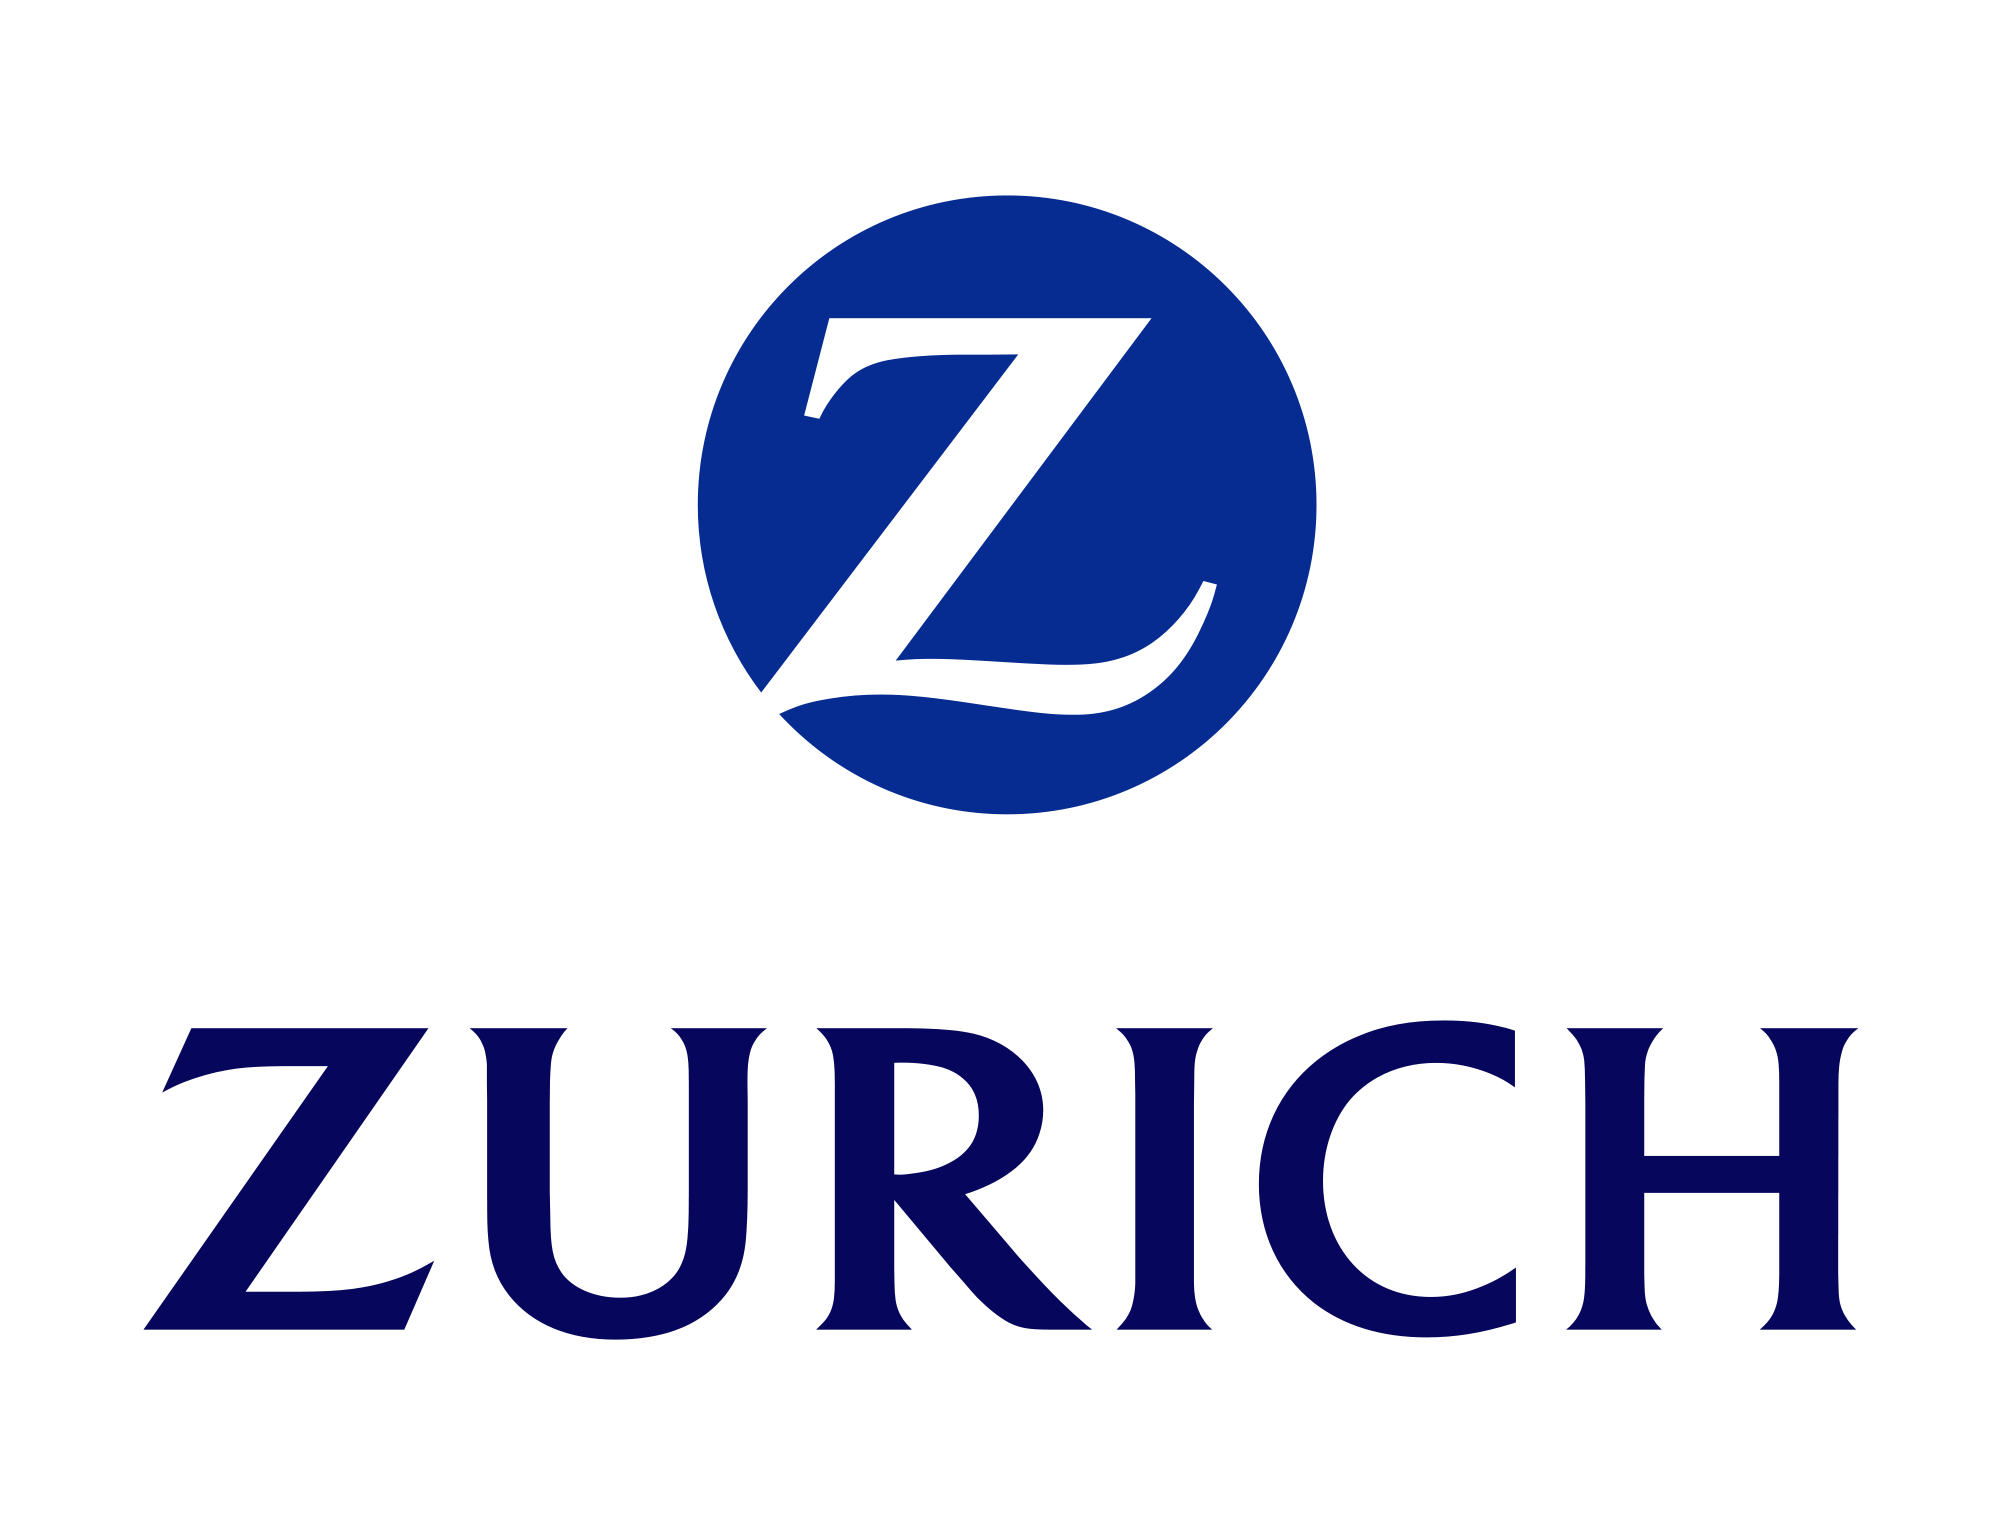 Zurich Insurance Group HiRes